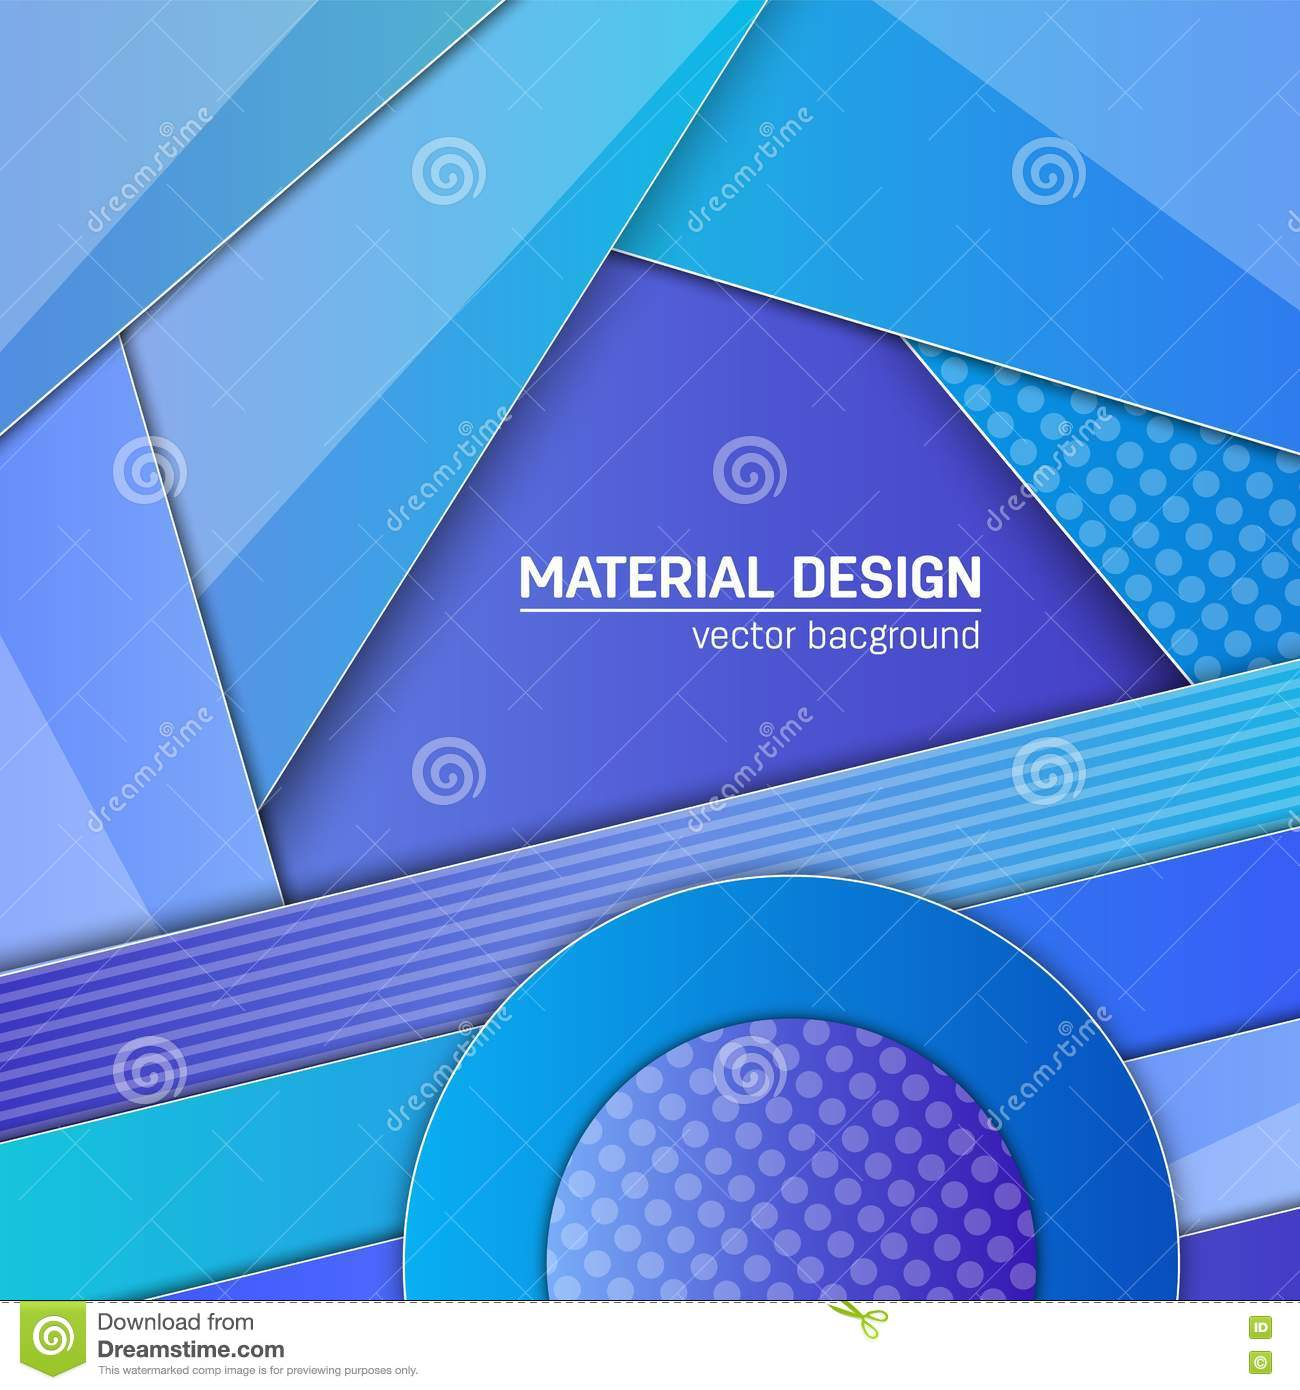 Vector material design background abstract creative concept layout abstract creative concept layout template for web and mobile app paper art illustration design style blank poster booklet motion wallpaper element maxwellsz